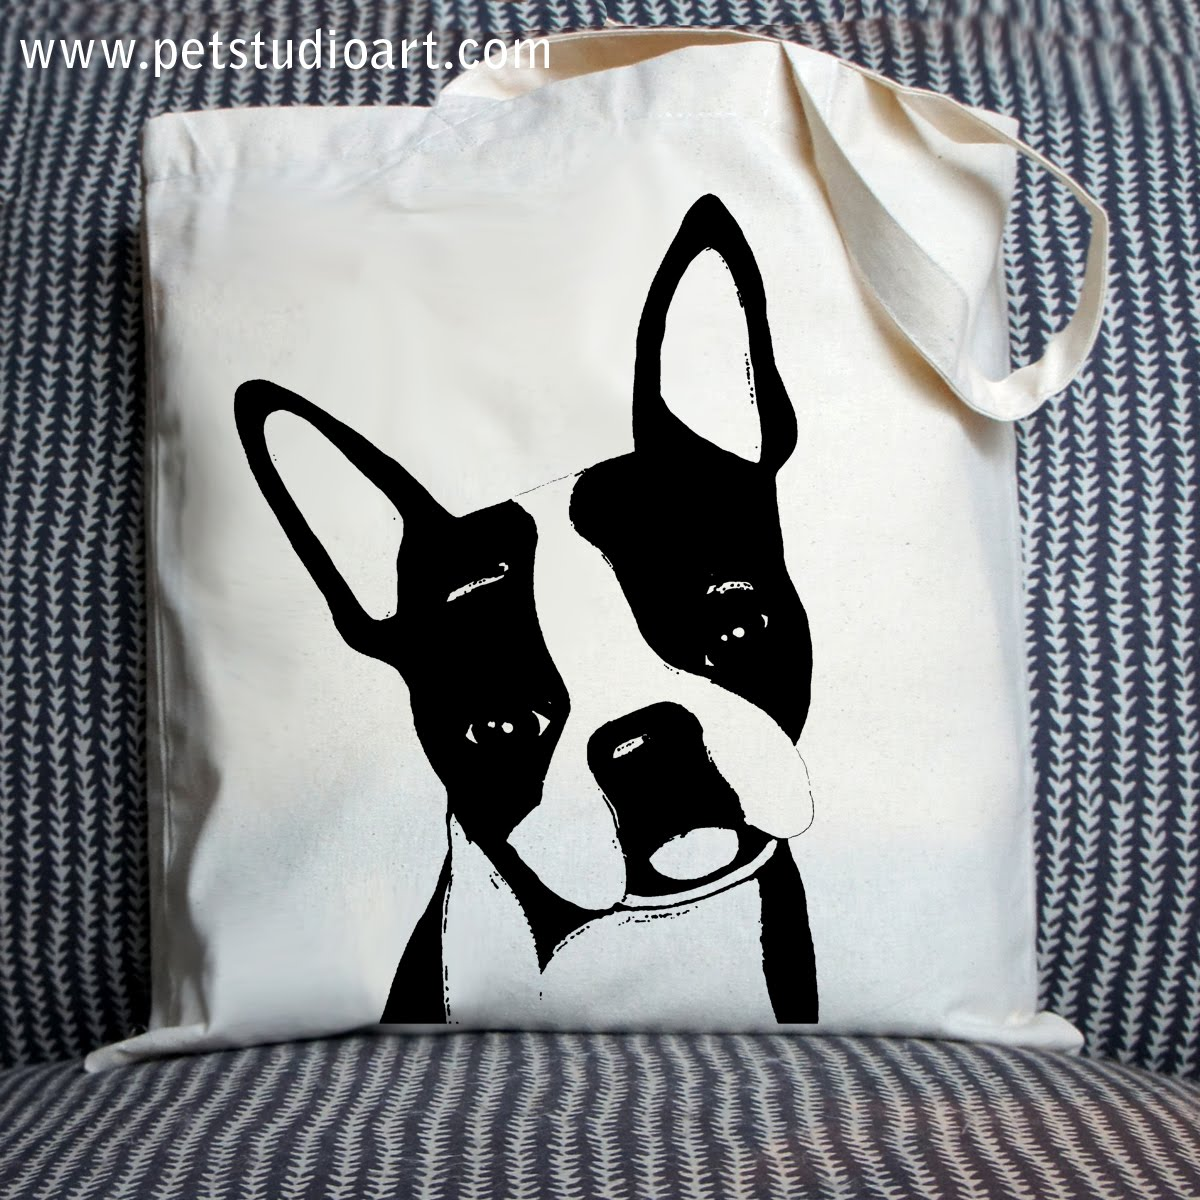 Duke the Boston Terrier Tote Bag  $15